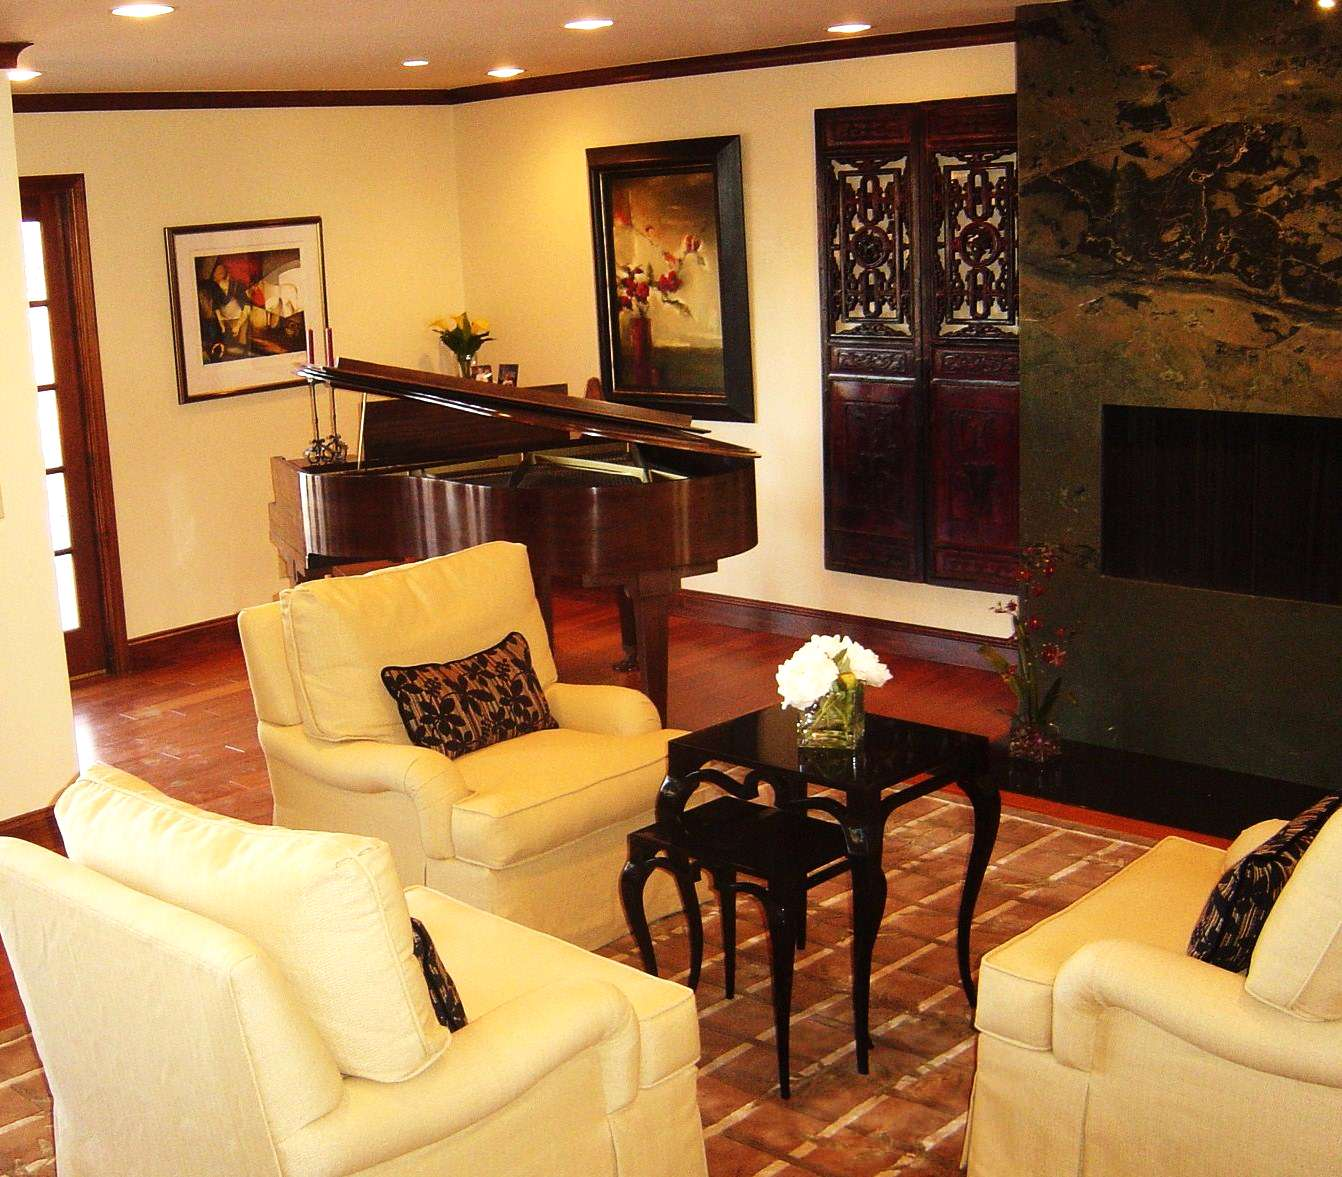 Modern living room with Asian Accents - a third view with Baby Grand piano